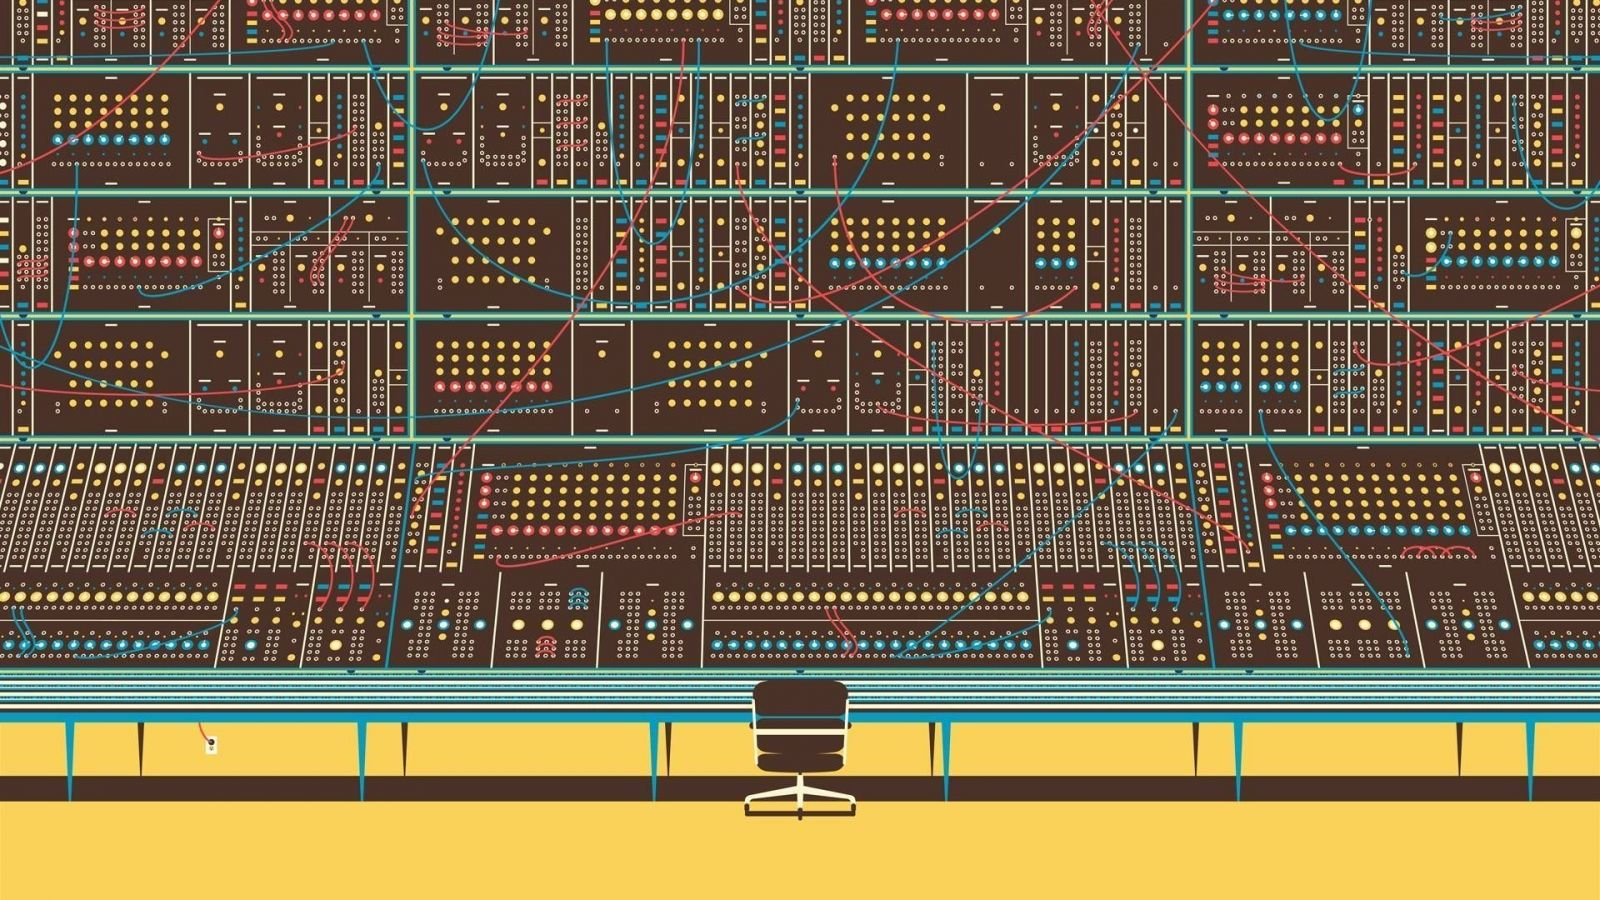 Control Panel Wallpapers Top Free Control Panel Backgrounds Wallpaperaccess